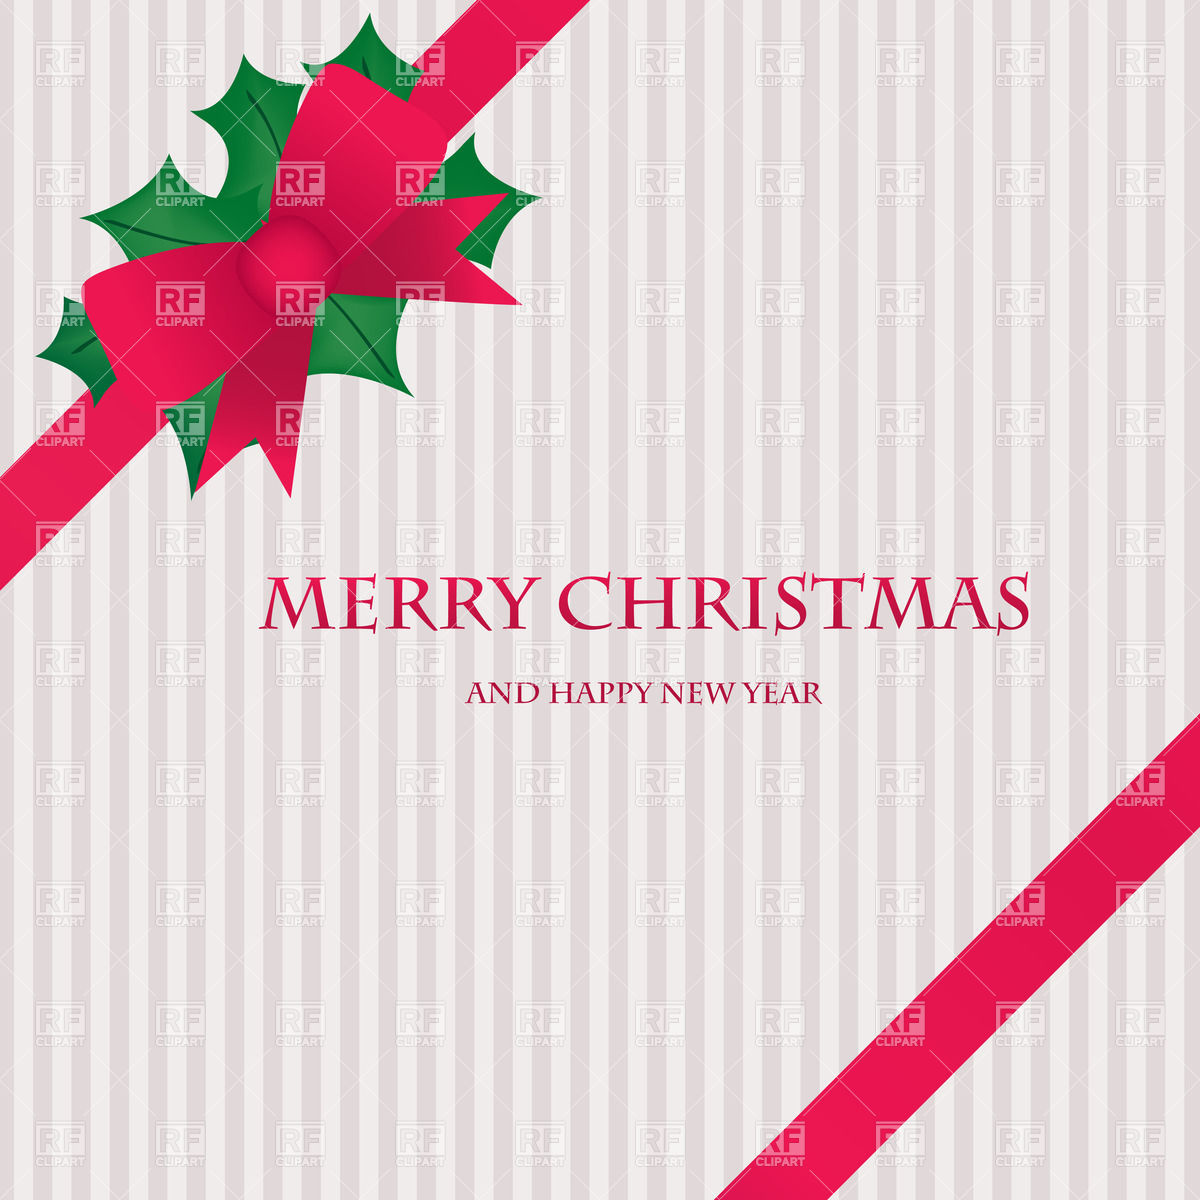 1200x1200 Christmas Stripy Card With Holly Leaves And Red Corner Ribbon